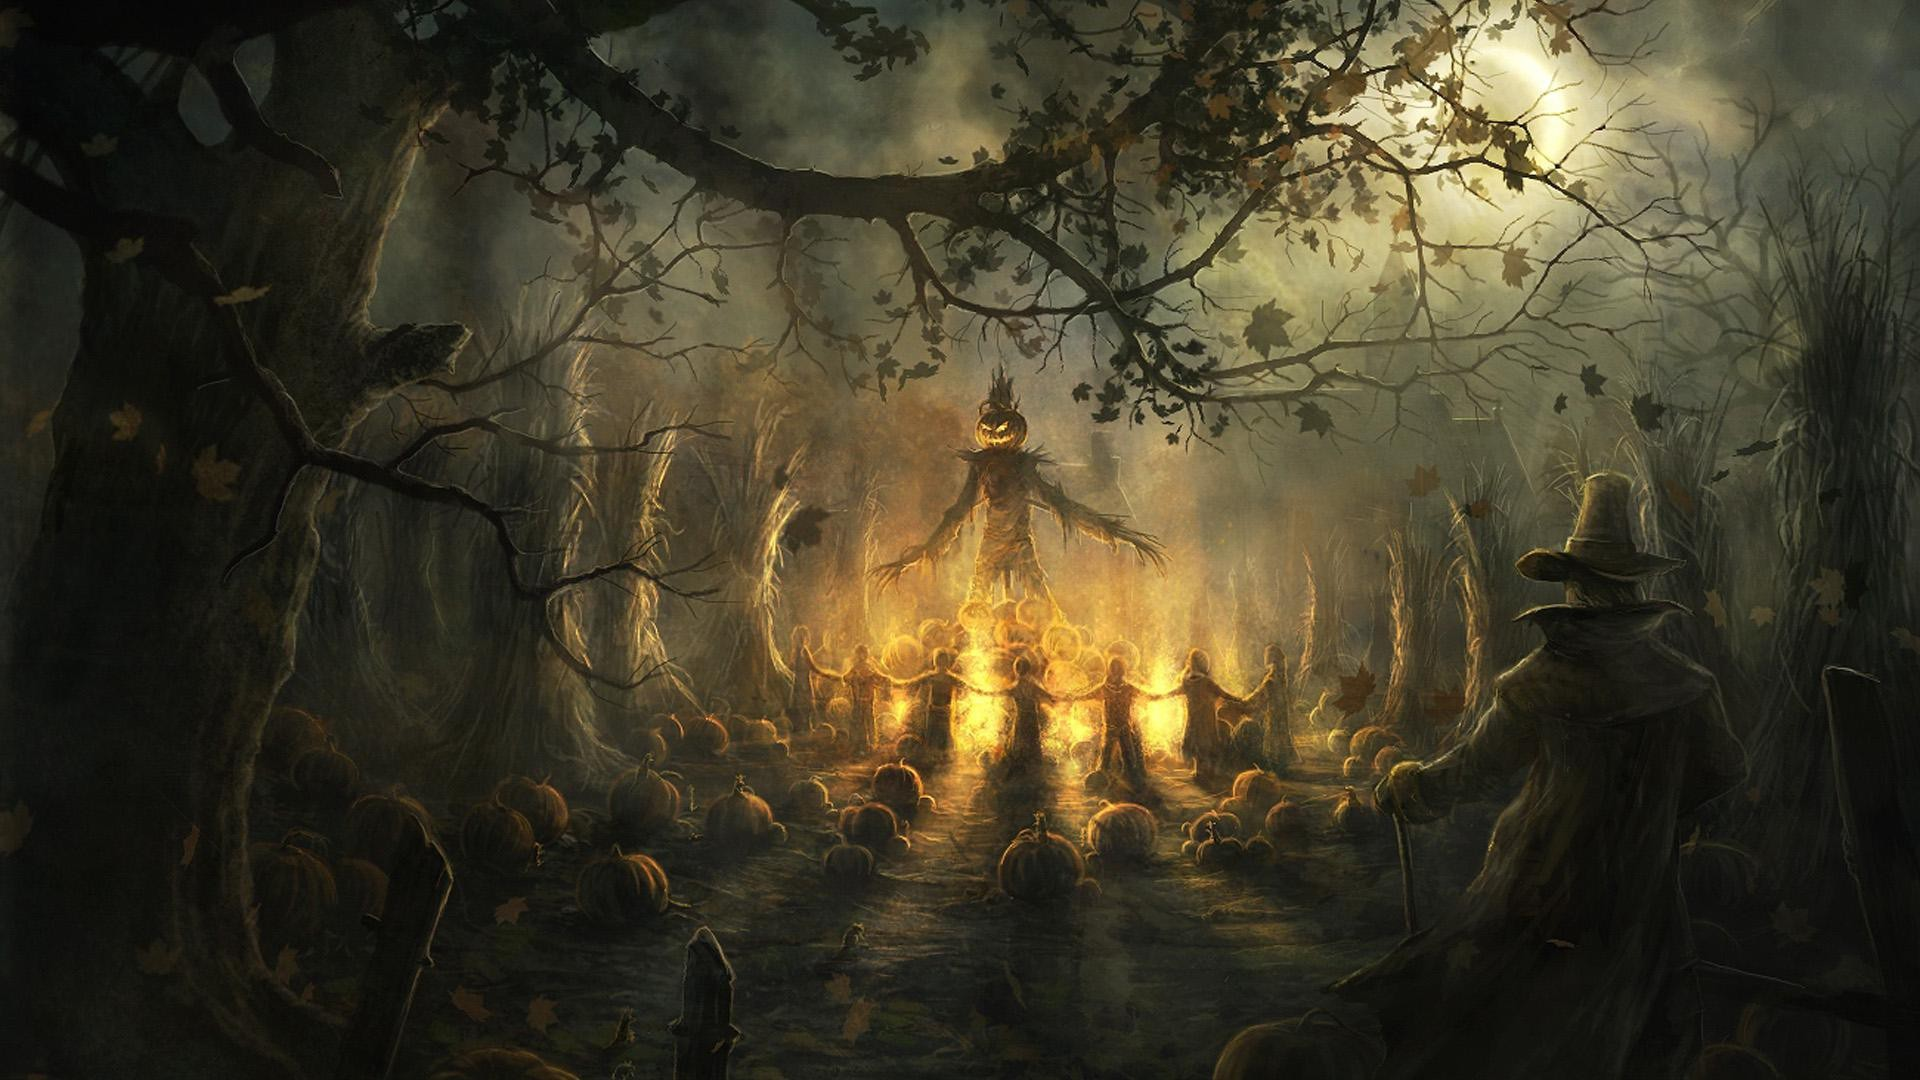 Scary halloween wallpapers and screensavers 58 images 1920x1080 halloween screensavers and backgrounds scarecrow halloween android wallpapers 960x854 mobile hd wallpaper tablet voltagebd Choice Image